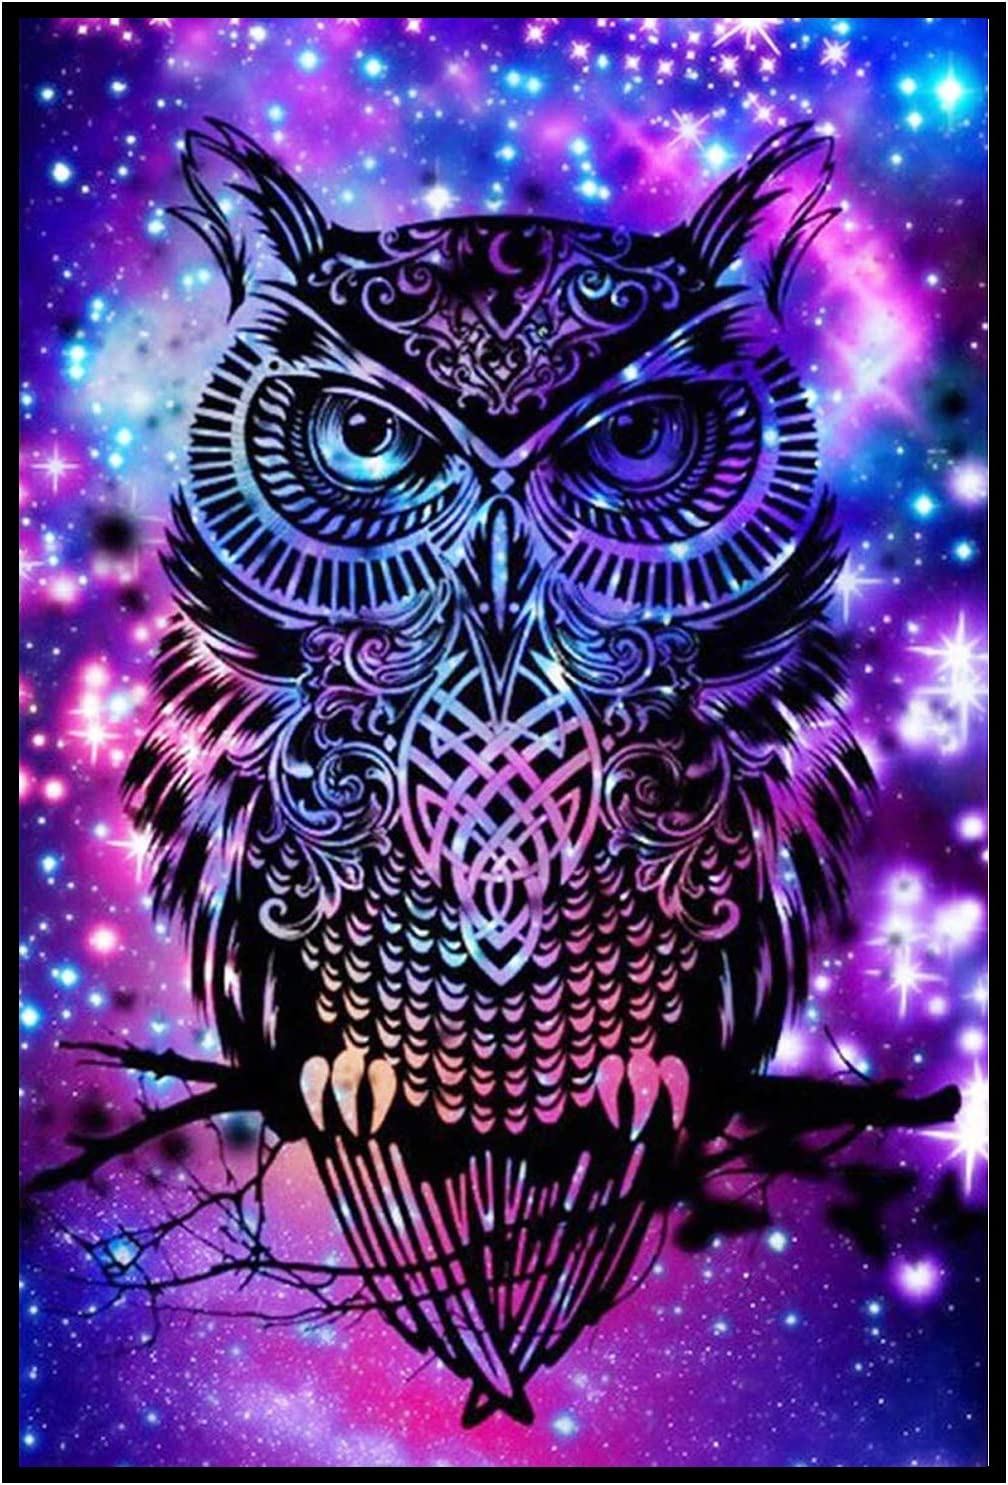 Kaychan DIY 5D Diamond Painting Numbering Kit Painting Cross Stitch Full Diamond Crystal Rhinestone Embroidery Picture Art Craft, Home Decoration 16x12 Starry Owl